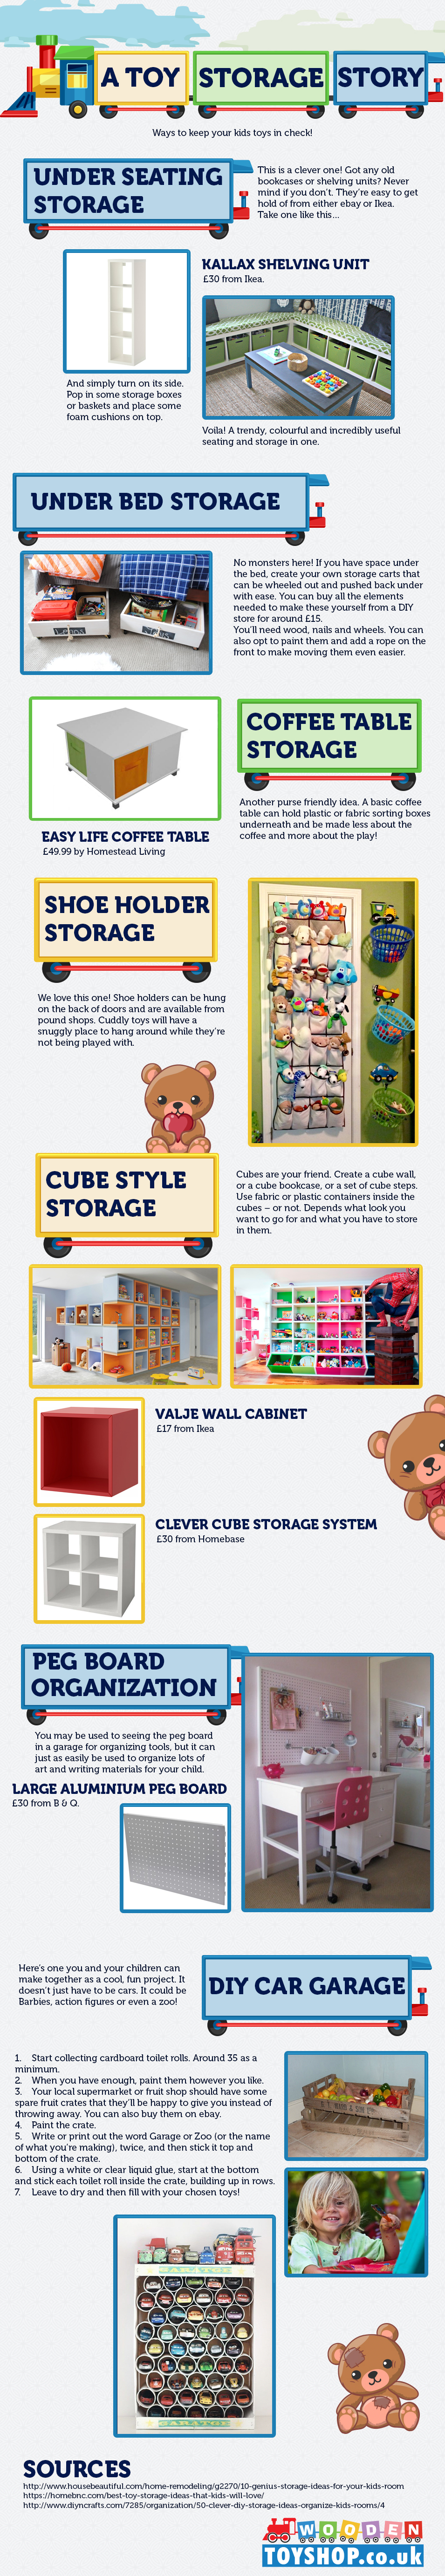 Storage for Toys